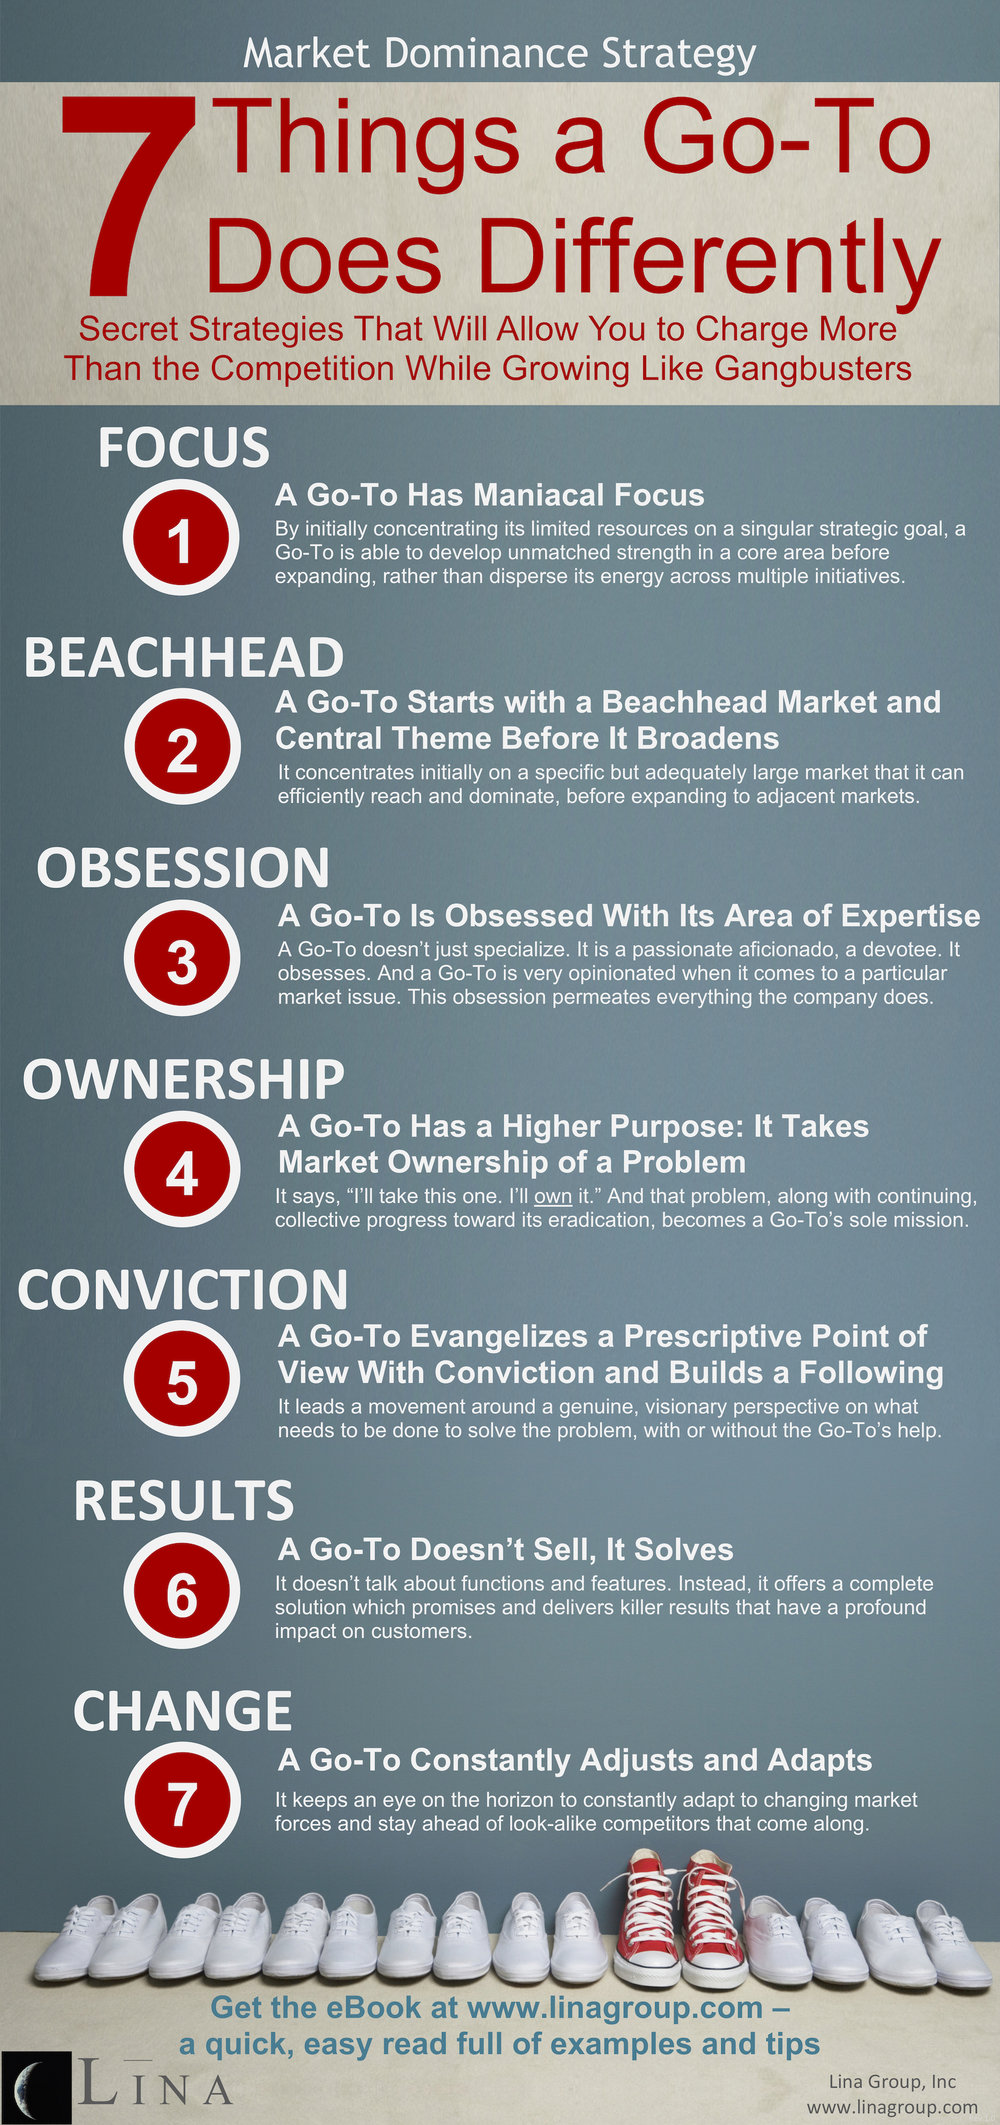 Lina Group Infographic - What a Go-To Does Differently V3.jpg